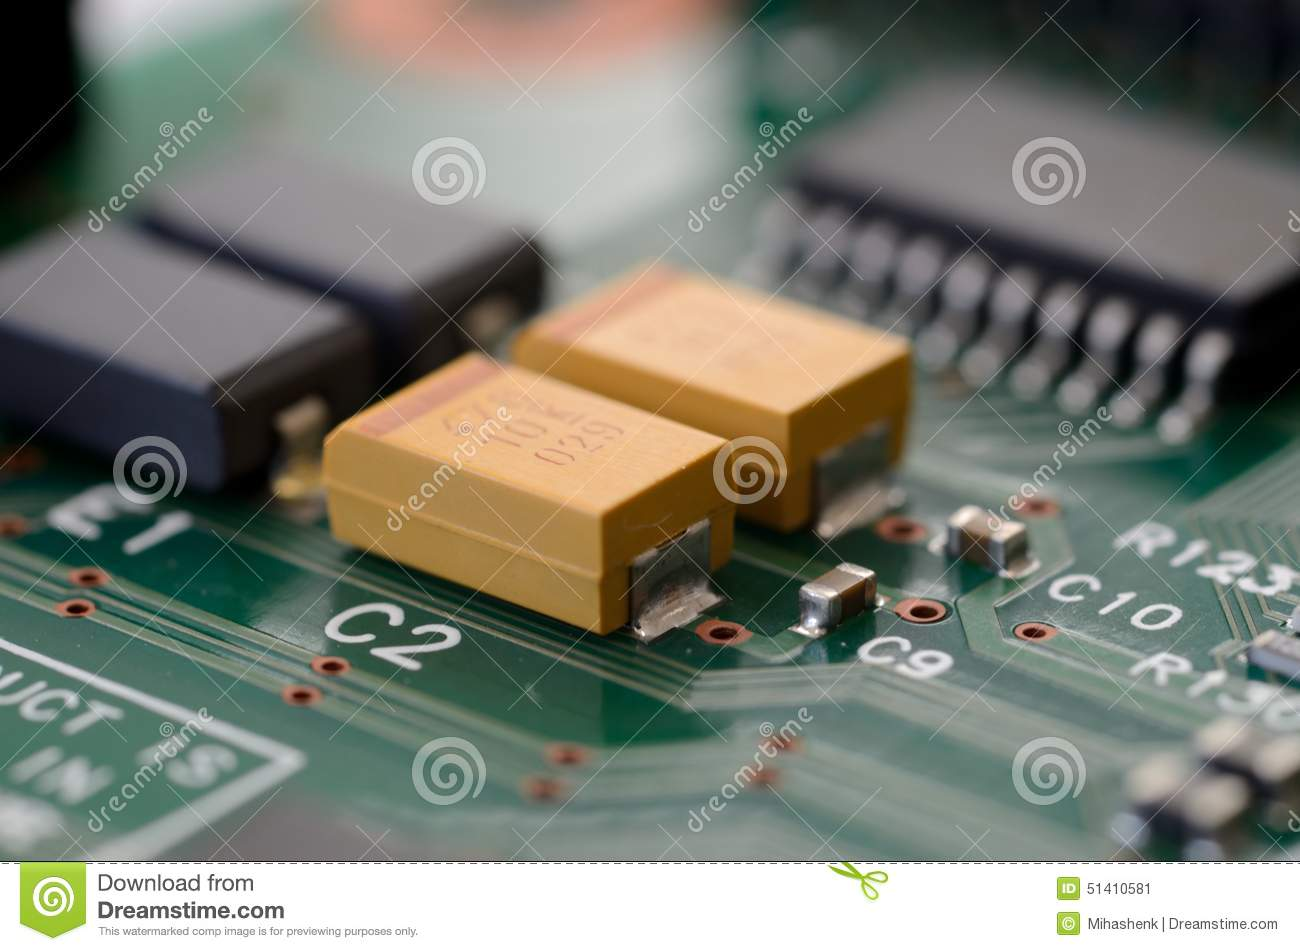 Close up tantalum capacitors on PCB